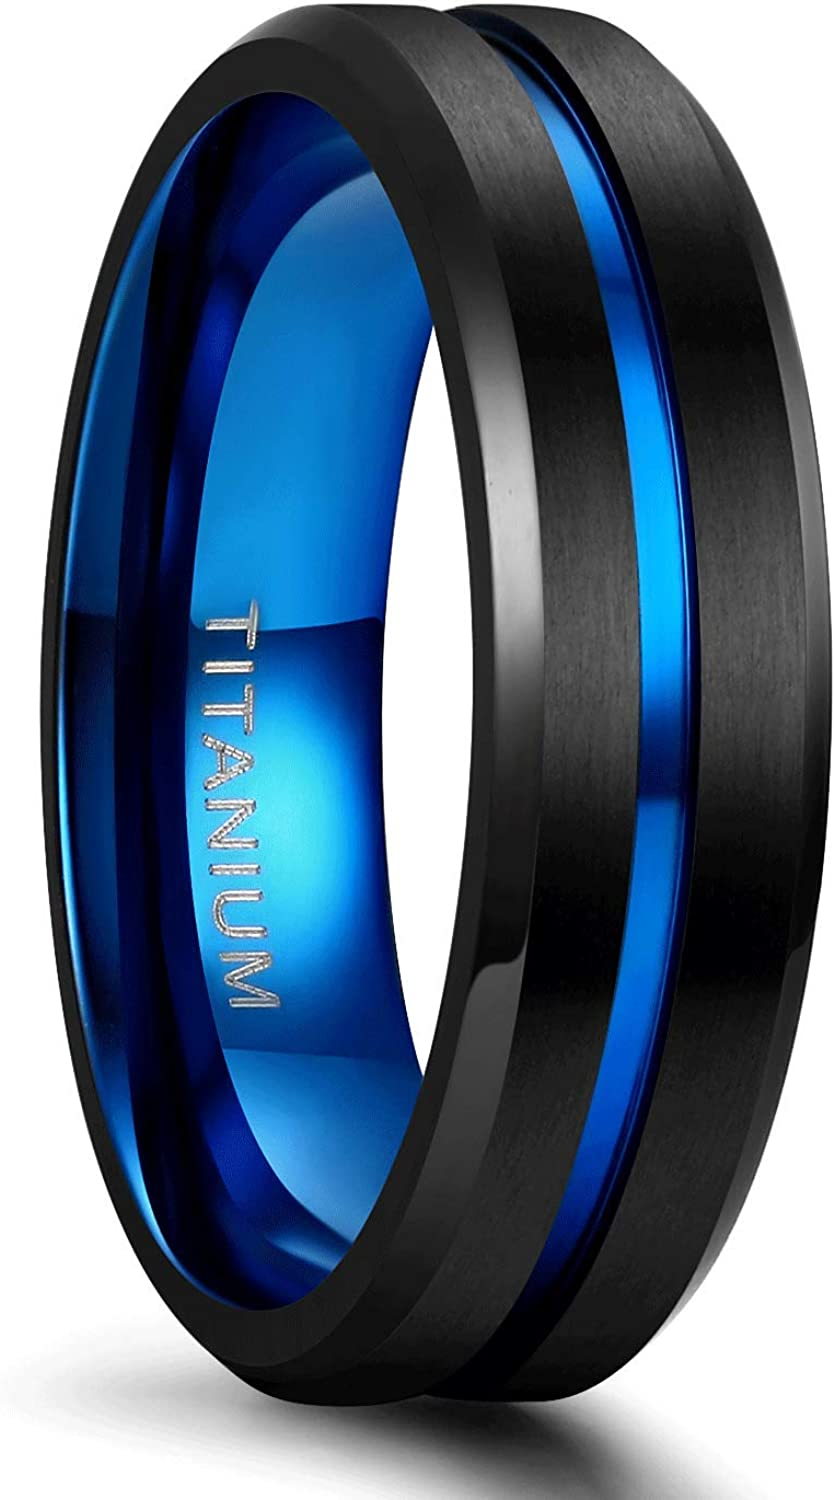 TIGRADE Titanium Ring 6mm 8mm Blue Centre Groove Wedding Band Comfort Fit Matte for Men Women